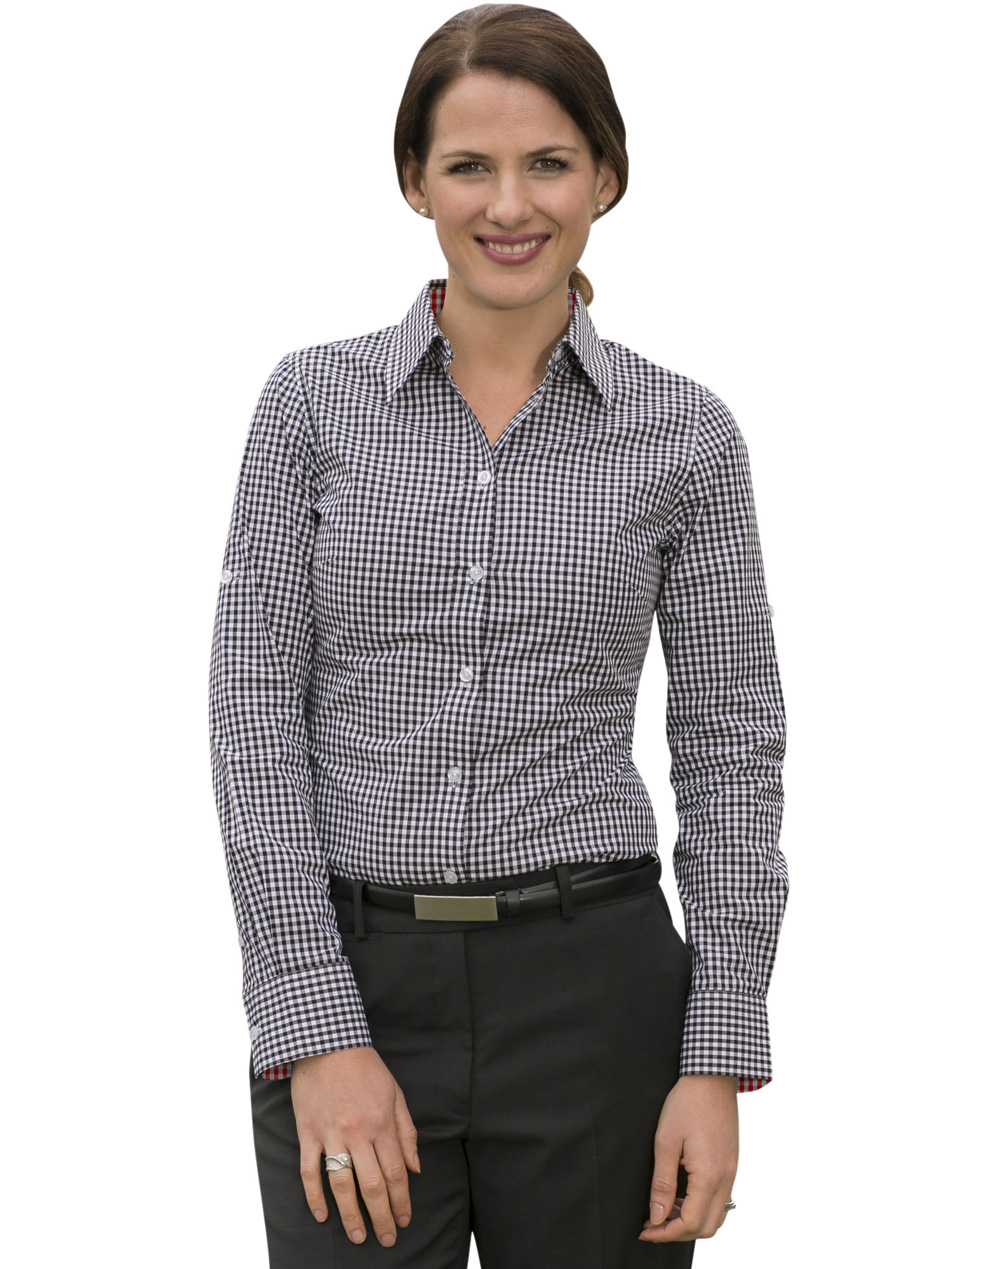 Women 39 s gingham check roll up l s shirt rjs group pty ltd for Pink gingham shirt ladies